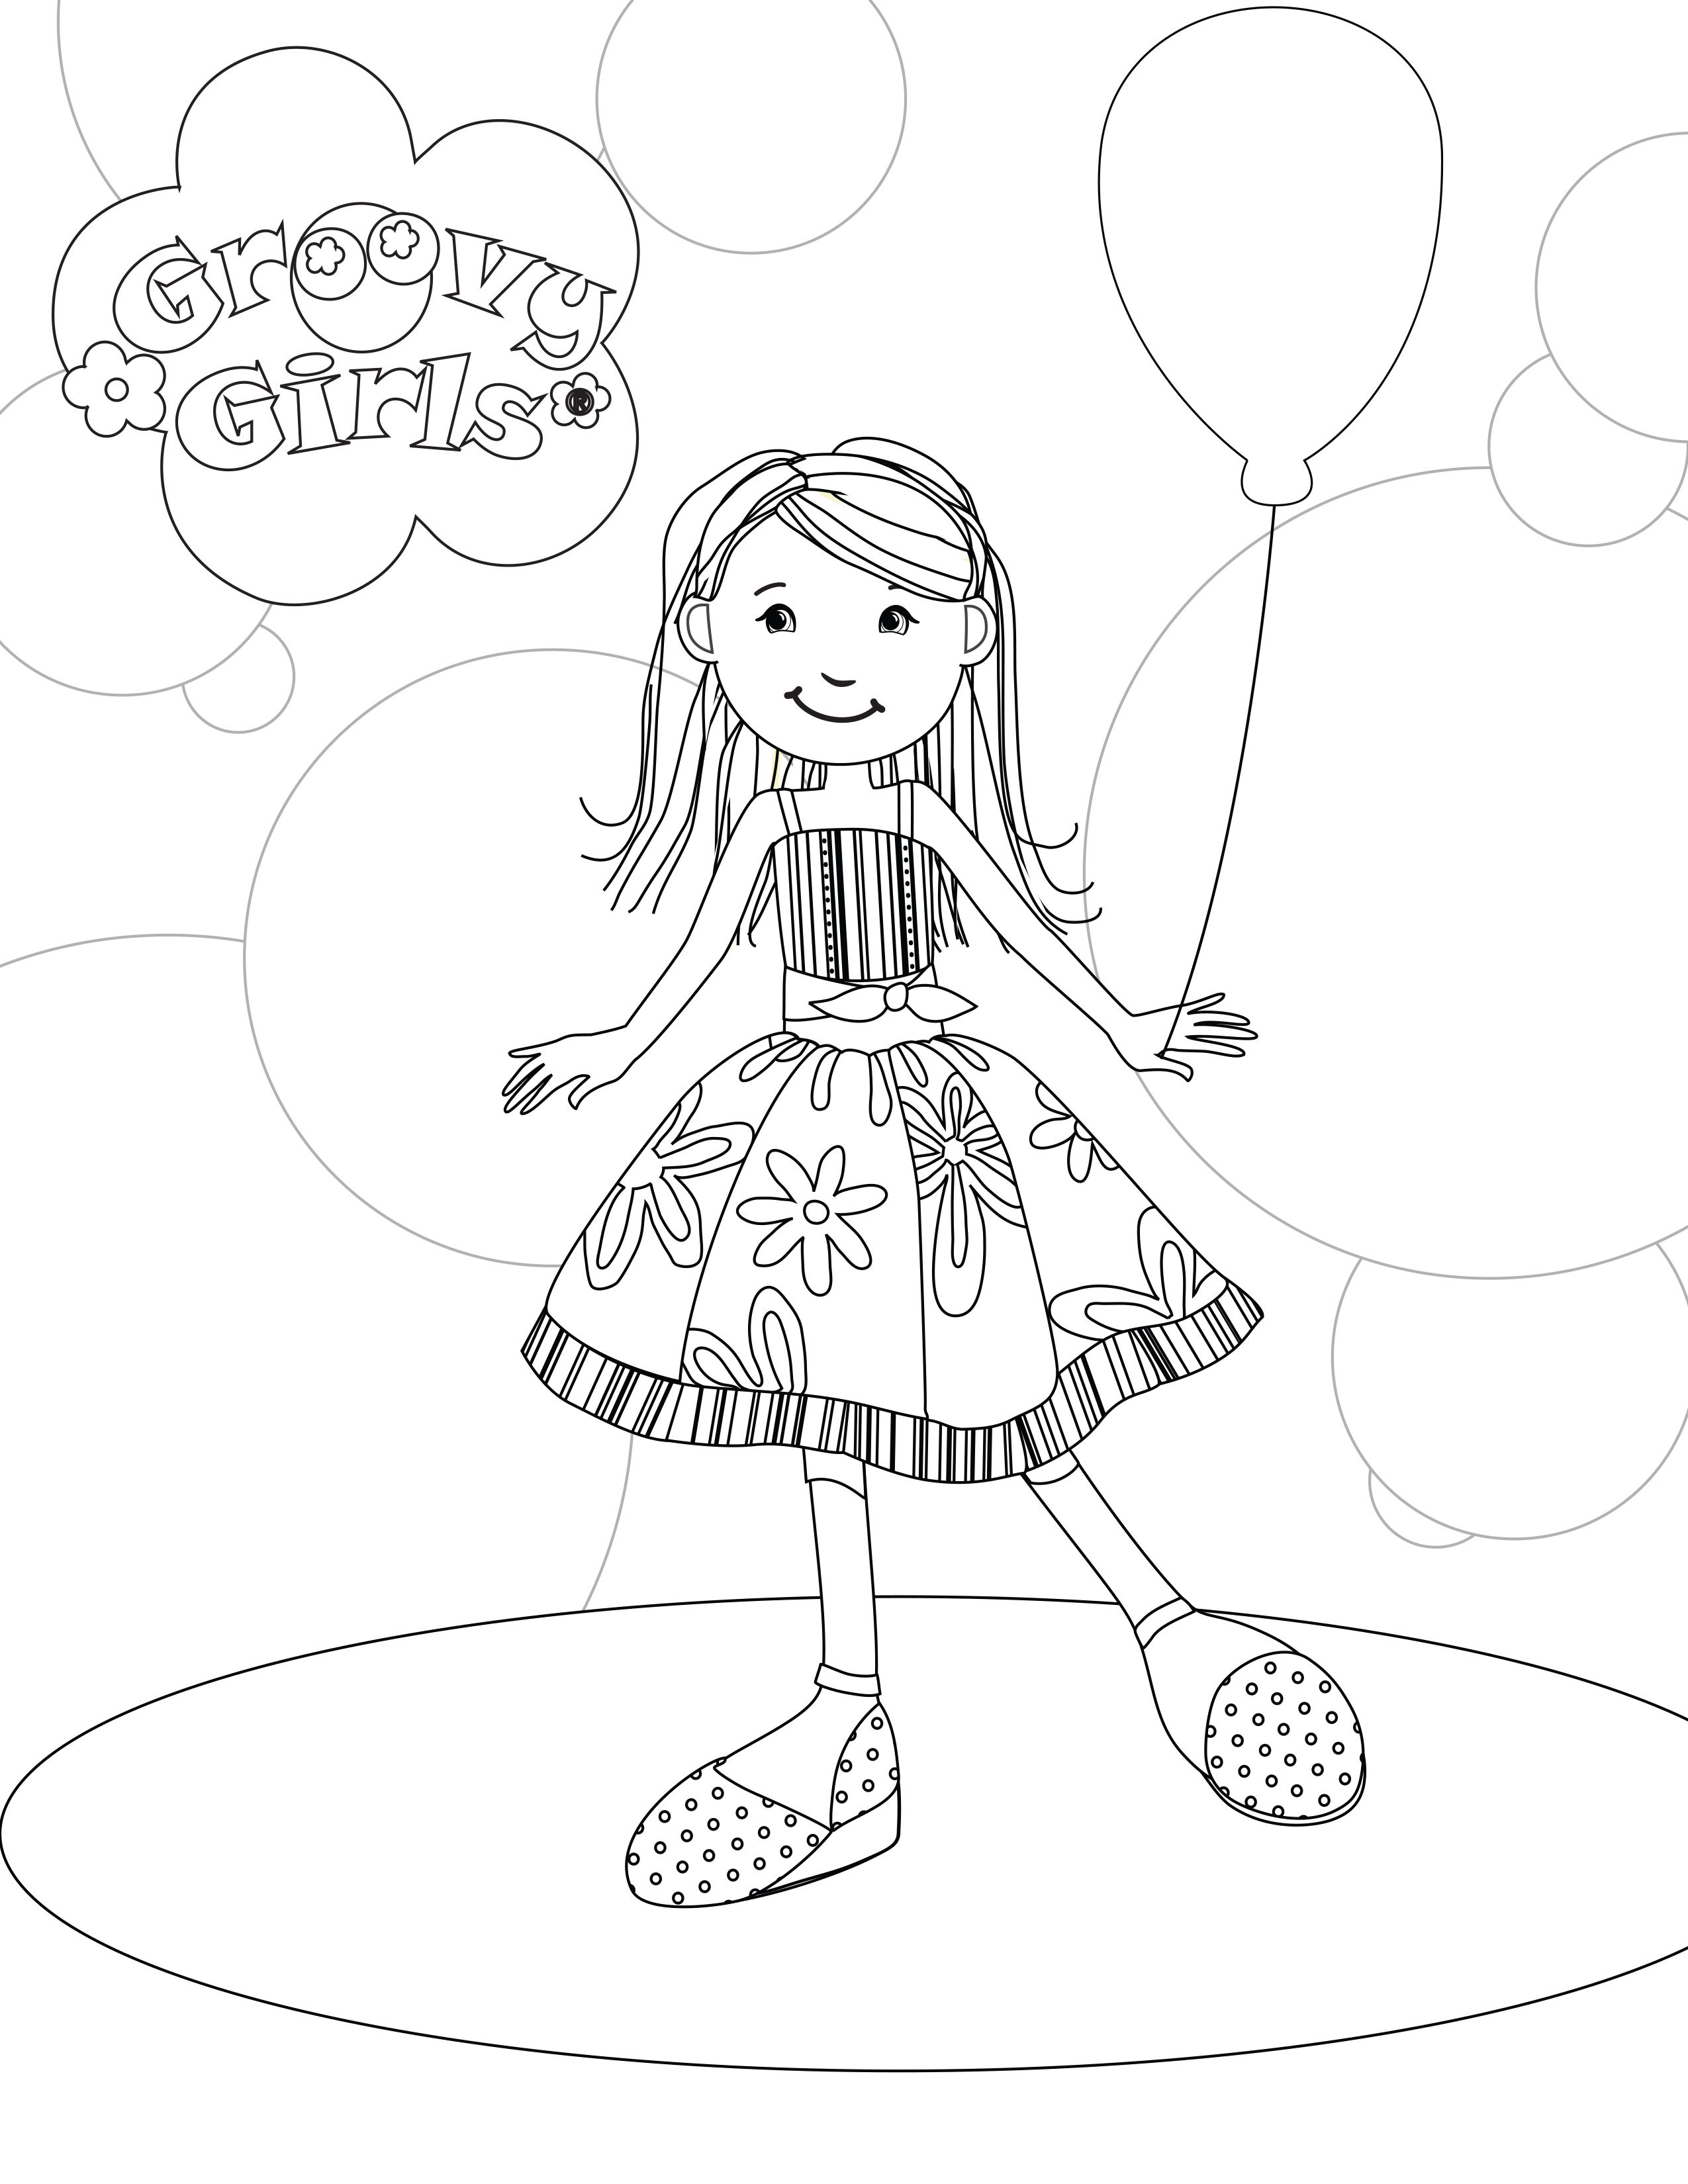 Coloring page : Groovy girl - Coloring.me | 3300x2550